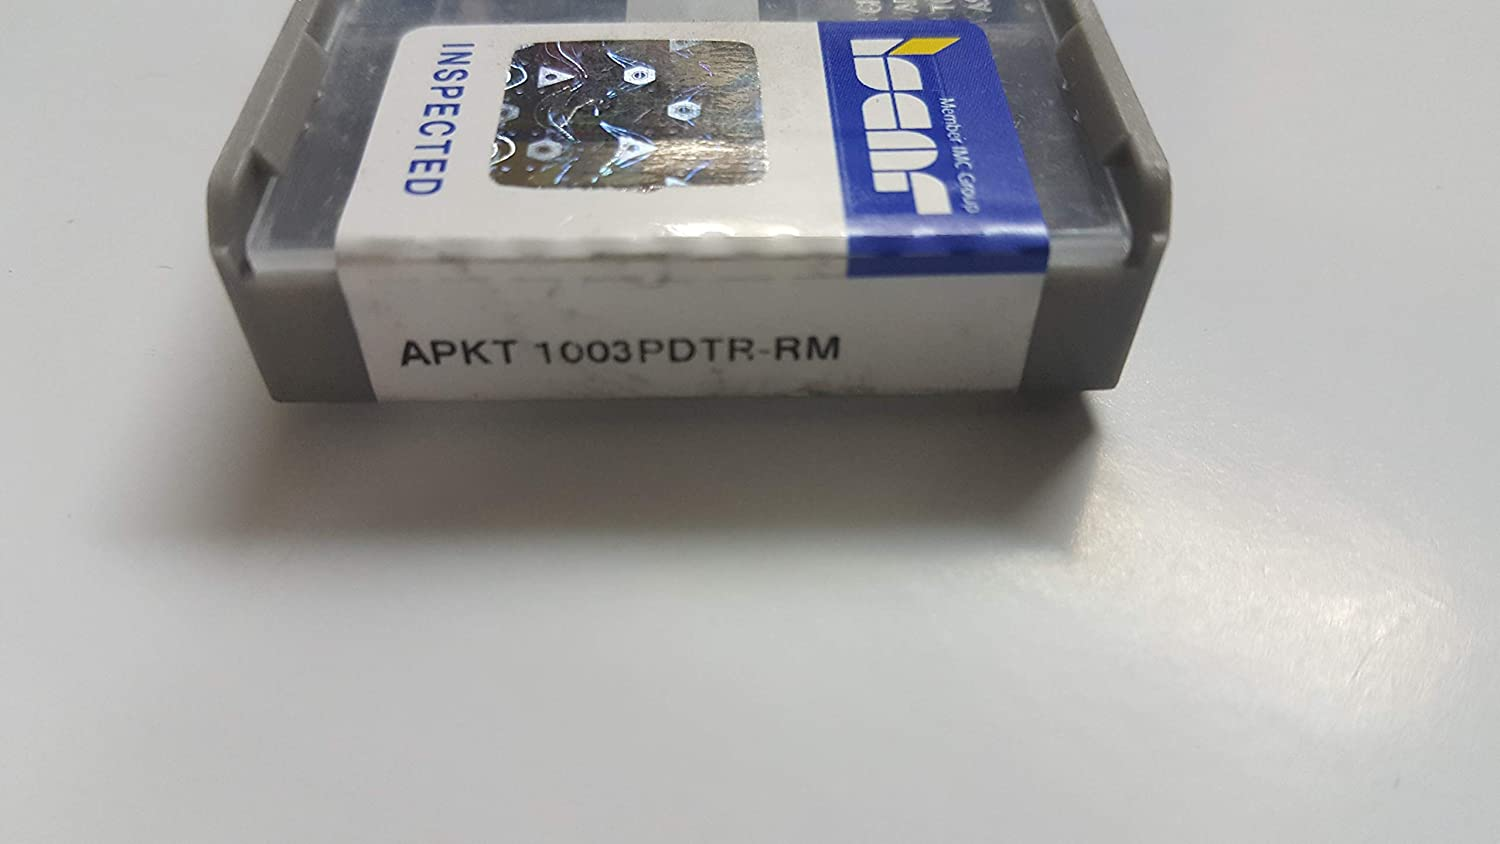 APKT 1003PDTR-RM IC950 PACK OF 10